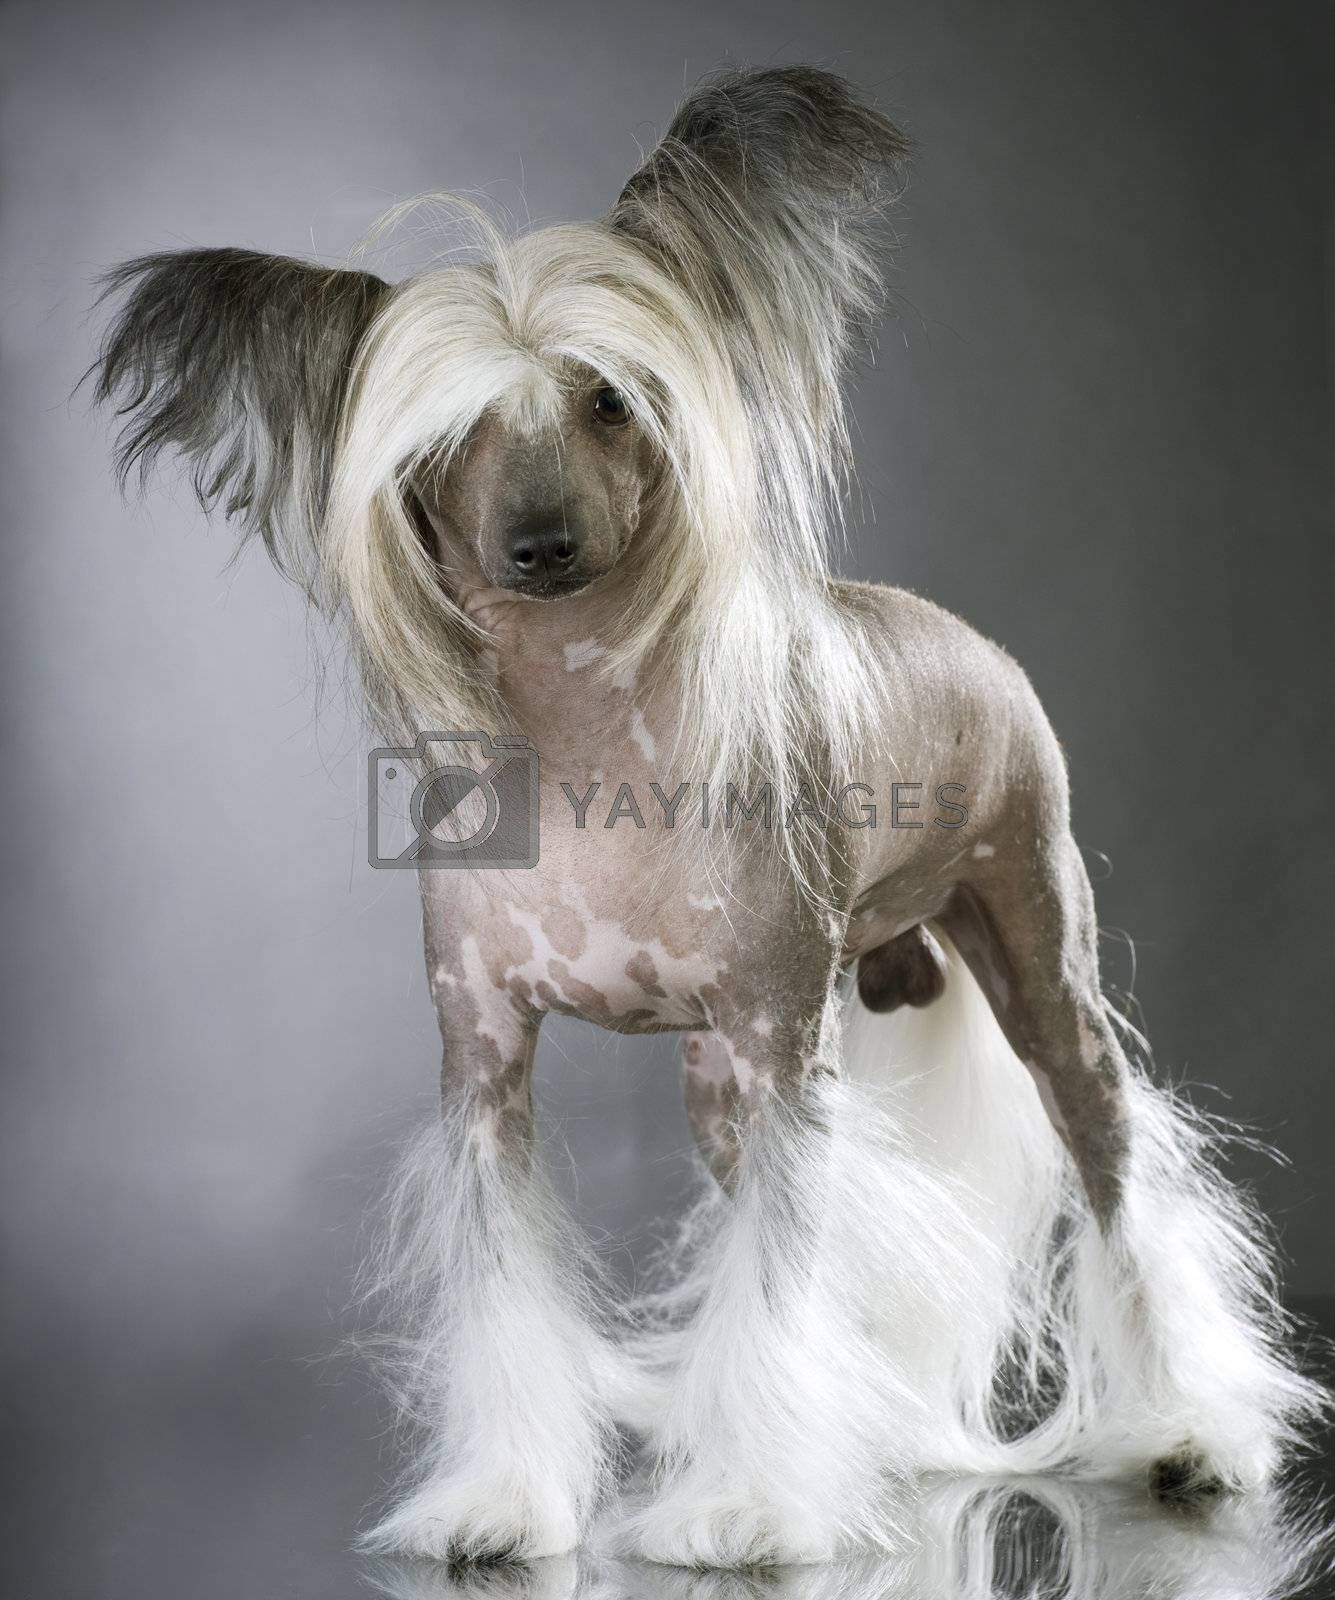 Lapdog. Chinese Crested Purebred Dog by Subbotina Anna